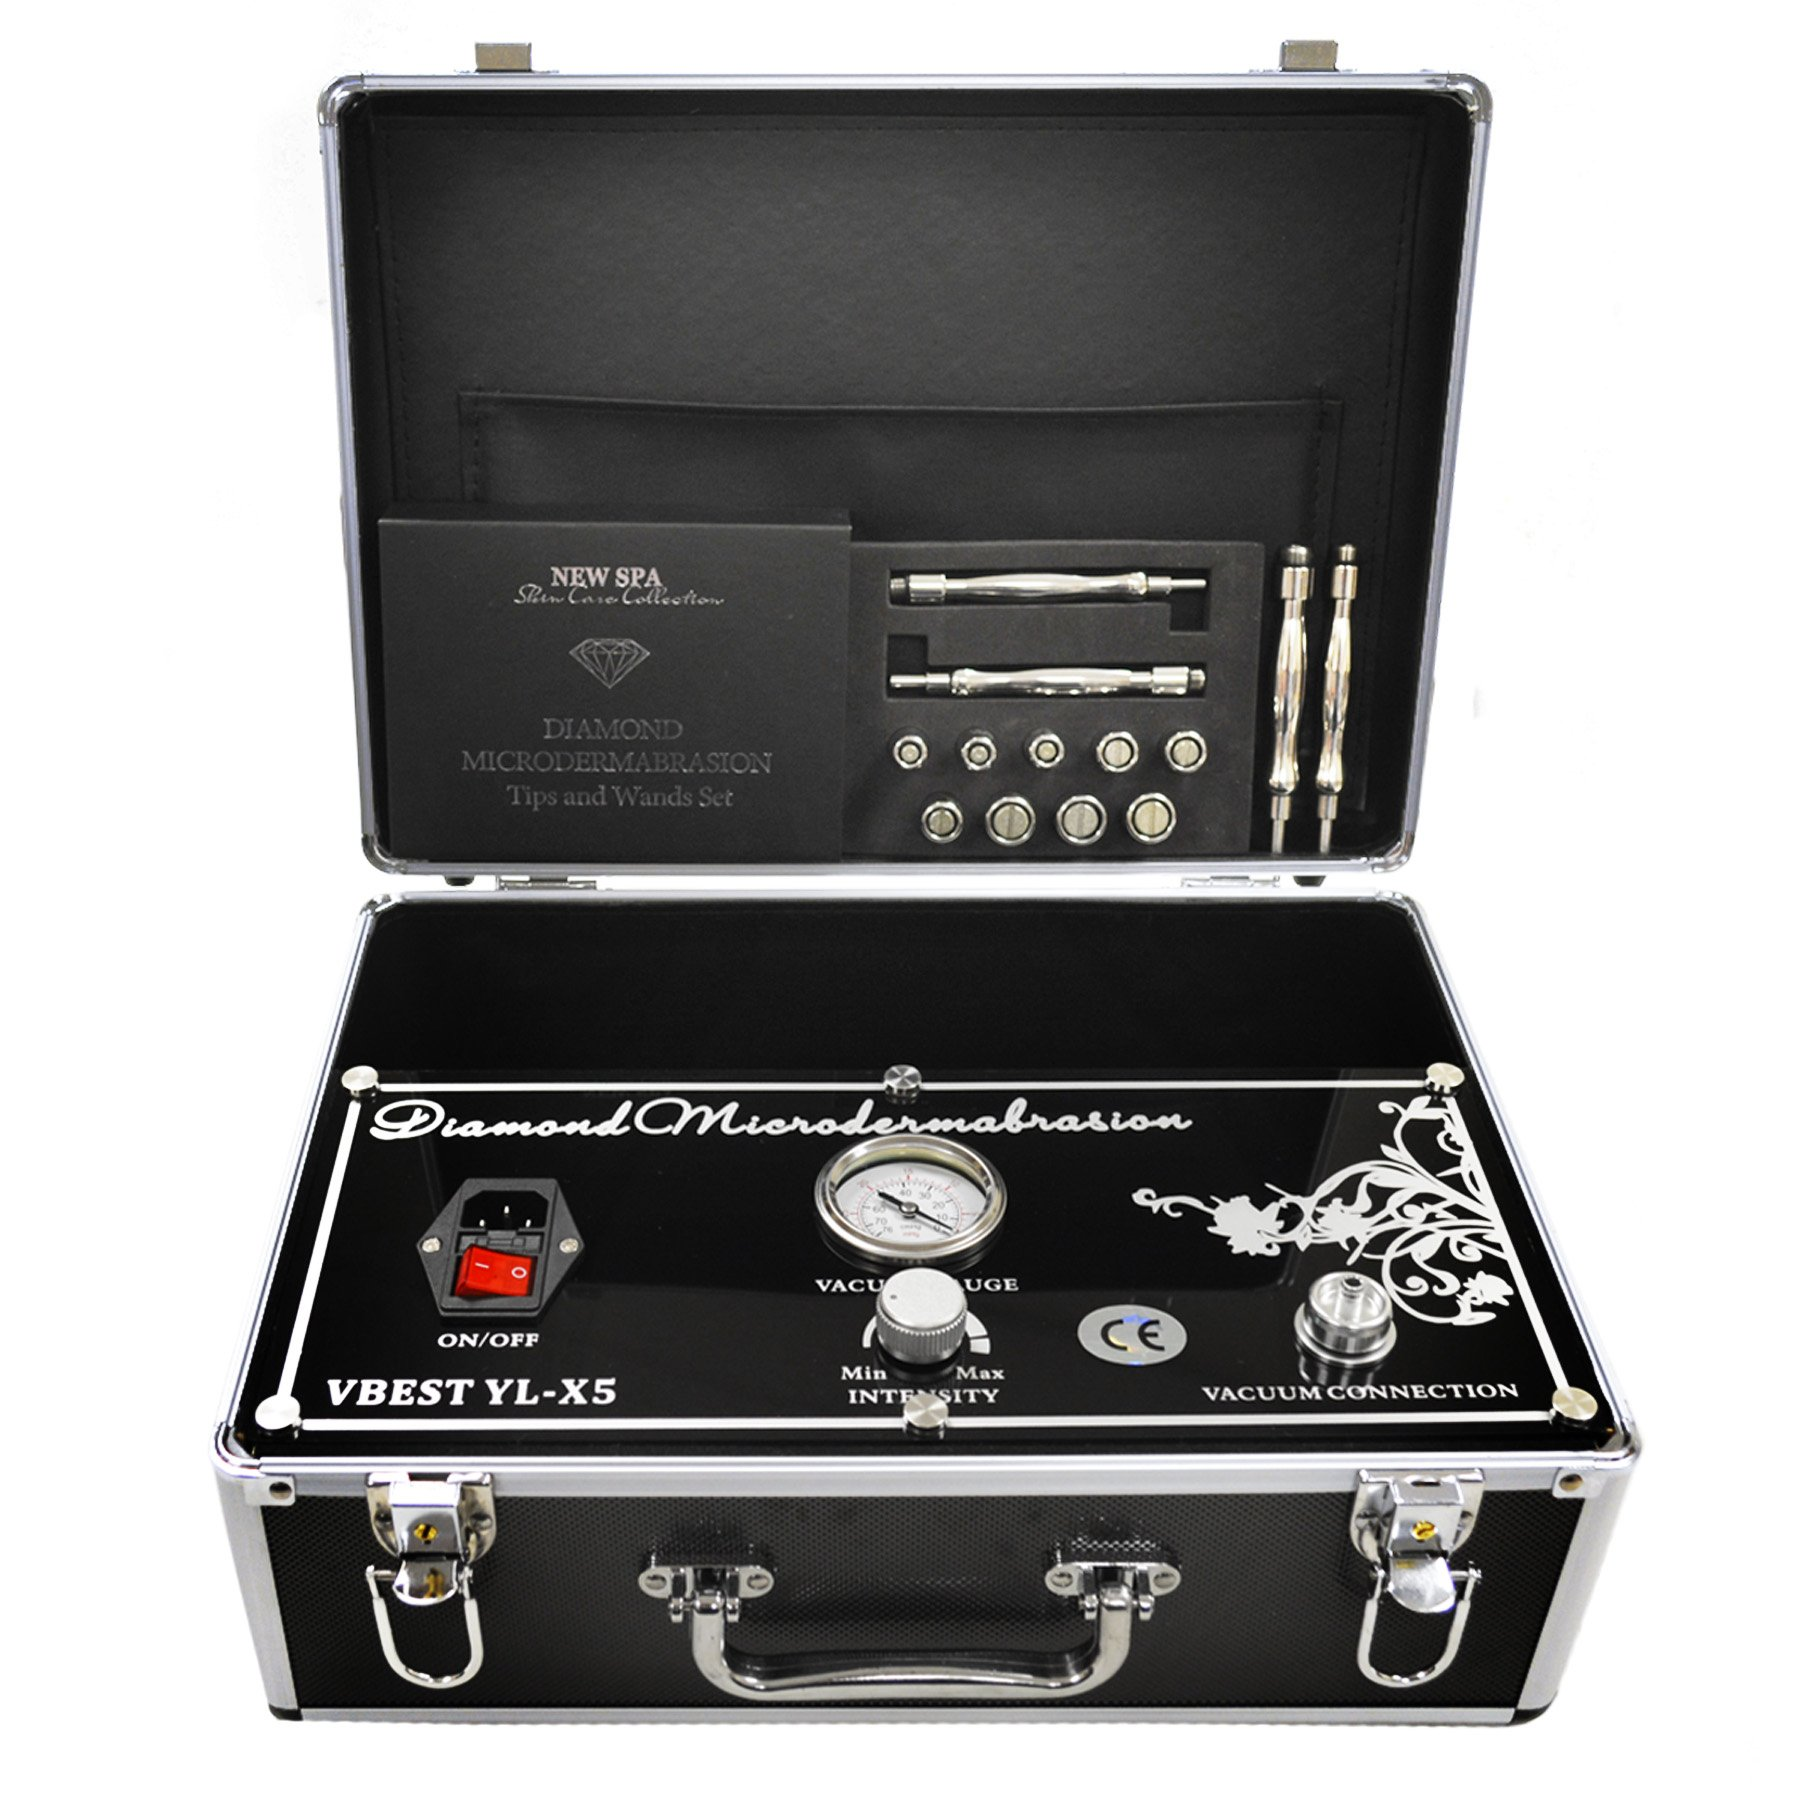 Professional Microdermabrasion Machine Kit by New Spa | Salon Grade 25inHG Suction | Face and Body Treatment Tips 18pcs